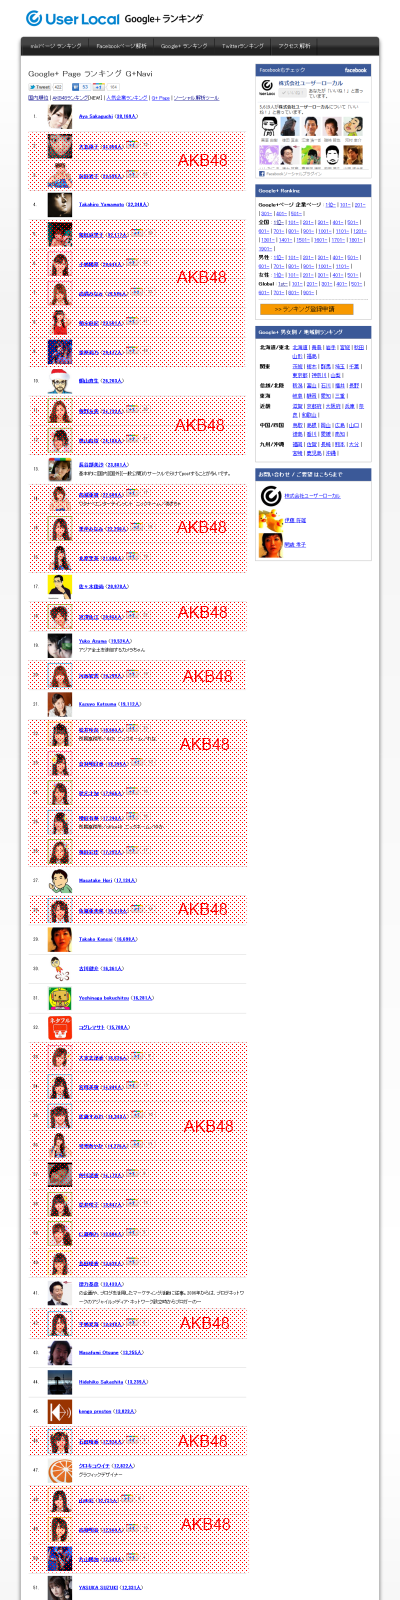 Google+ Occupied By AKB48 Within A Day In Japan